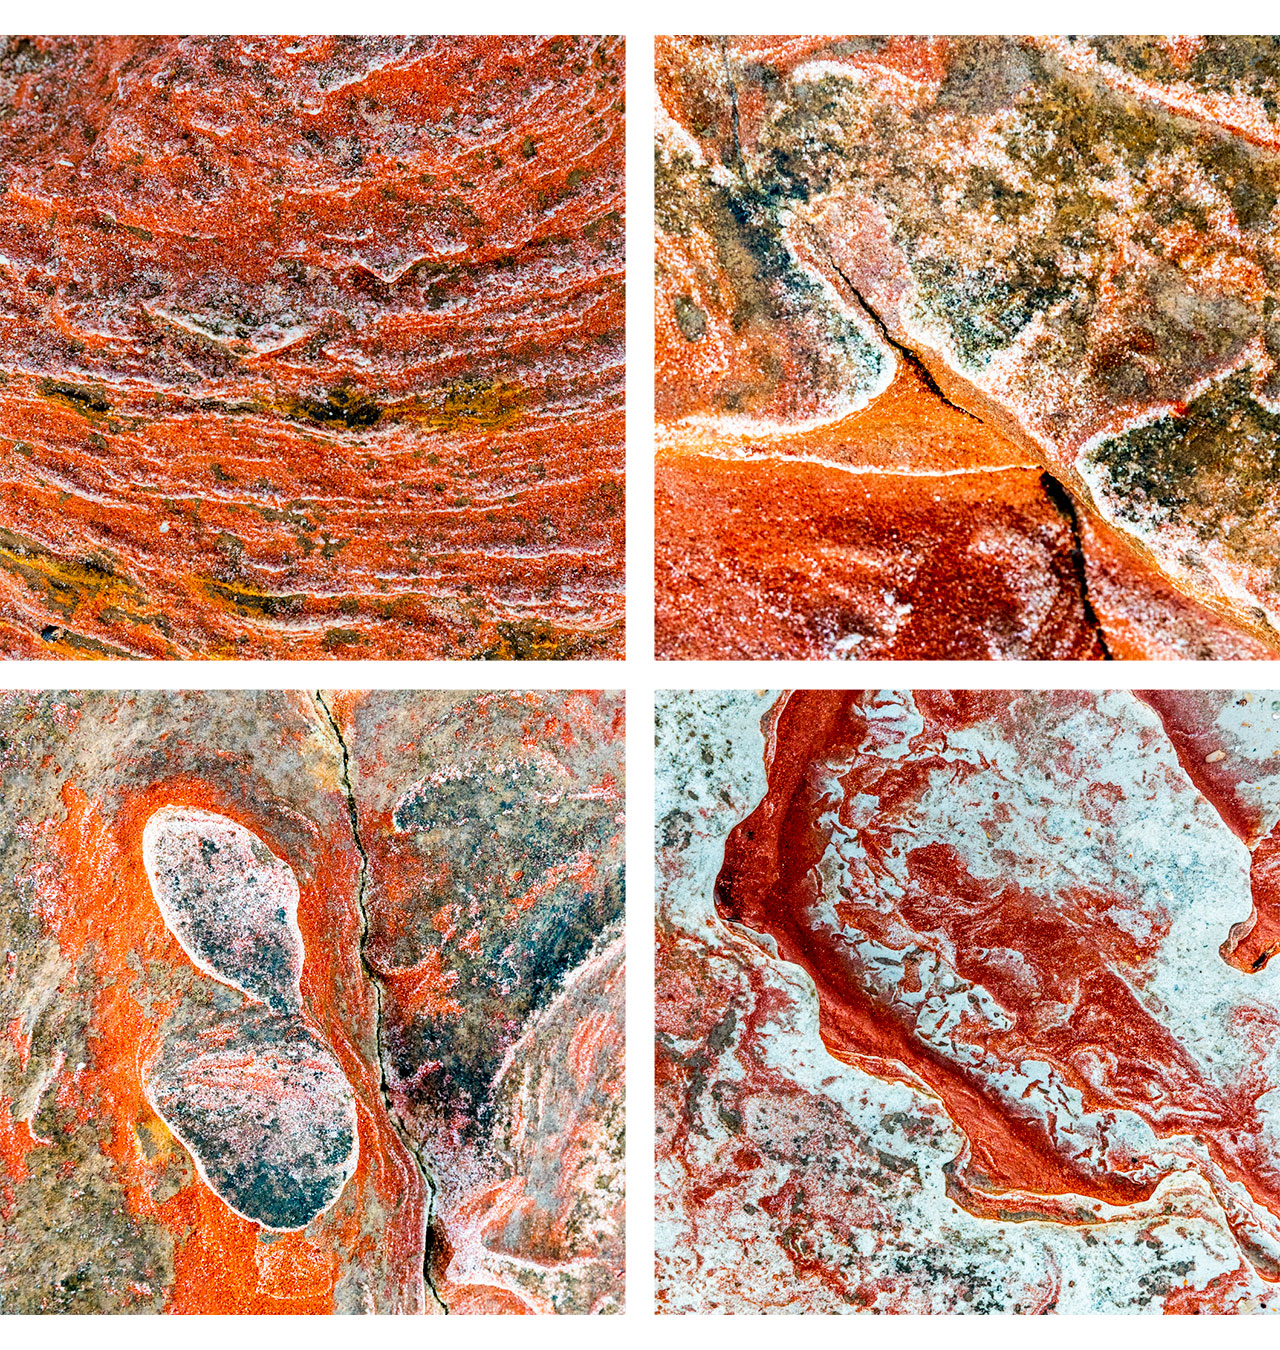 Montage of patterns in rock at Broome's Town Beach